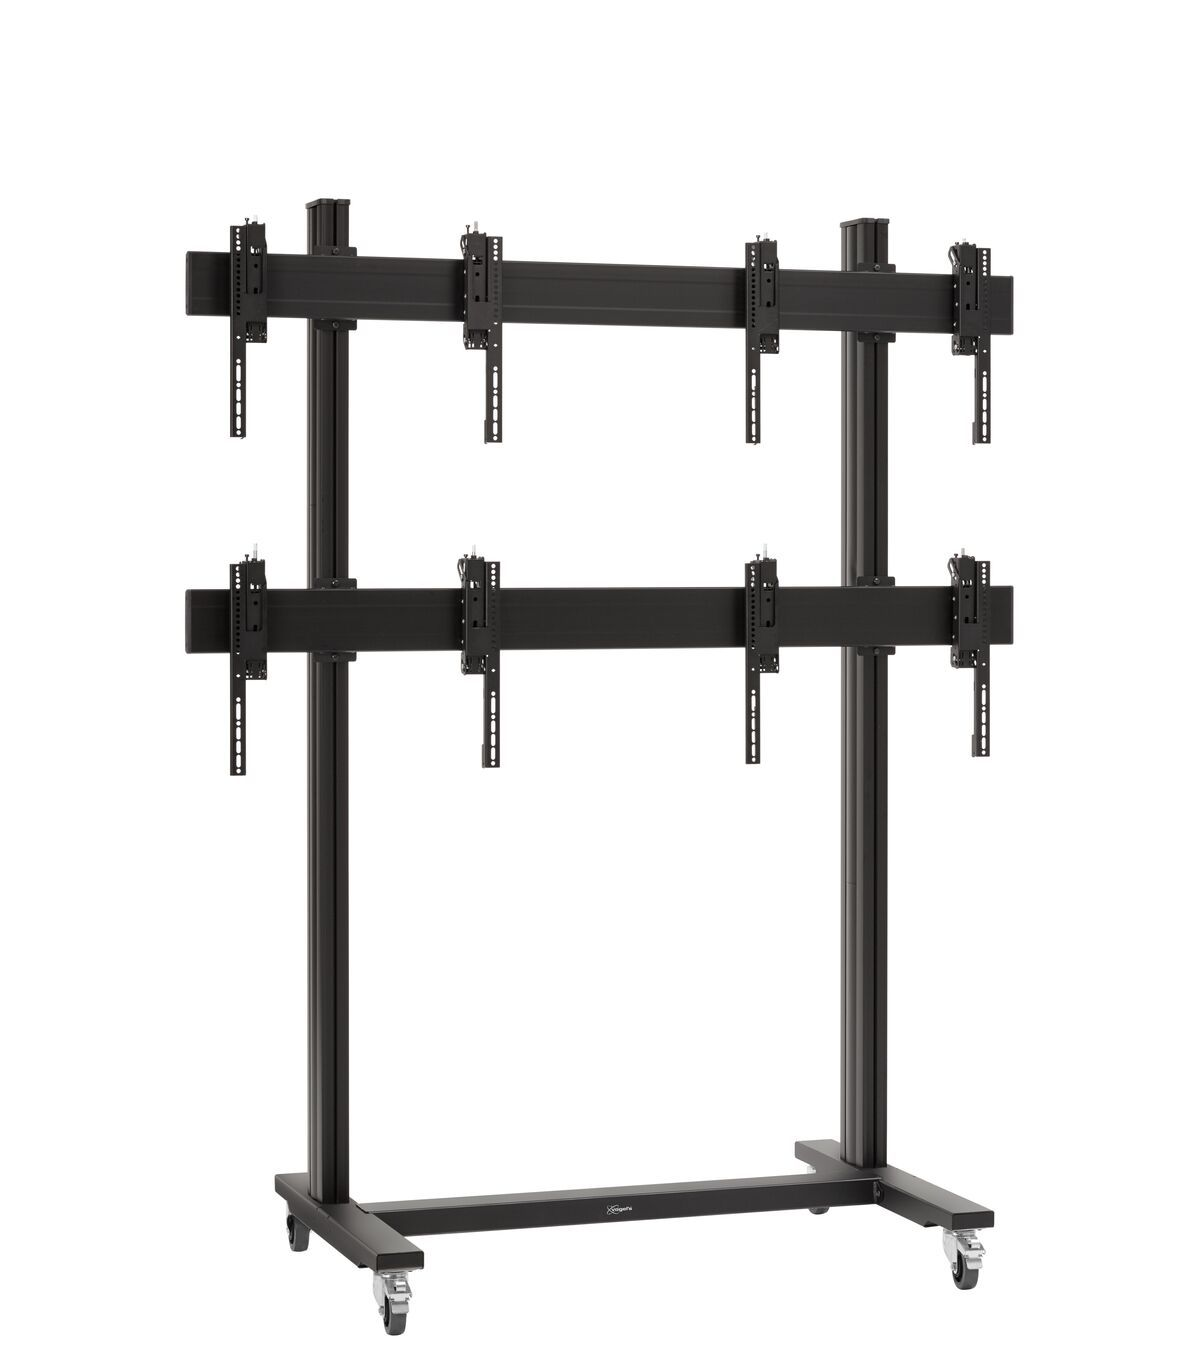 Vogel's PFA 9129 Video wall cross bar 1150 mm - Detail